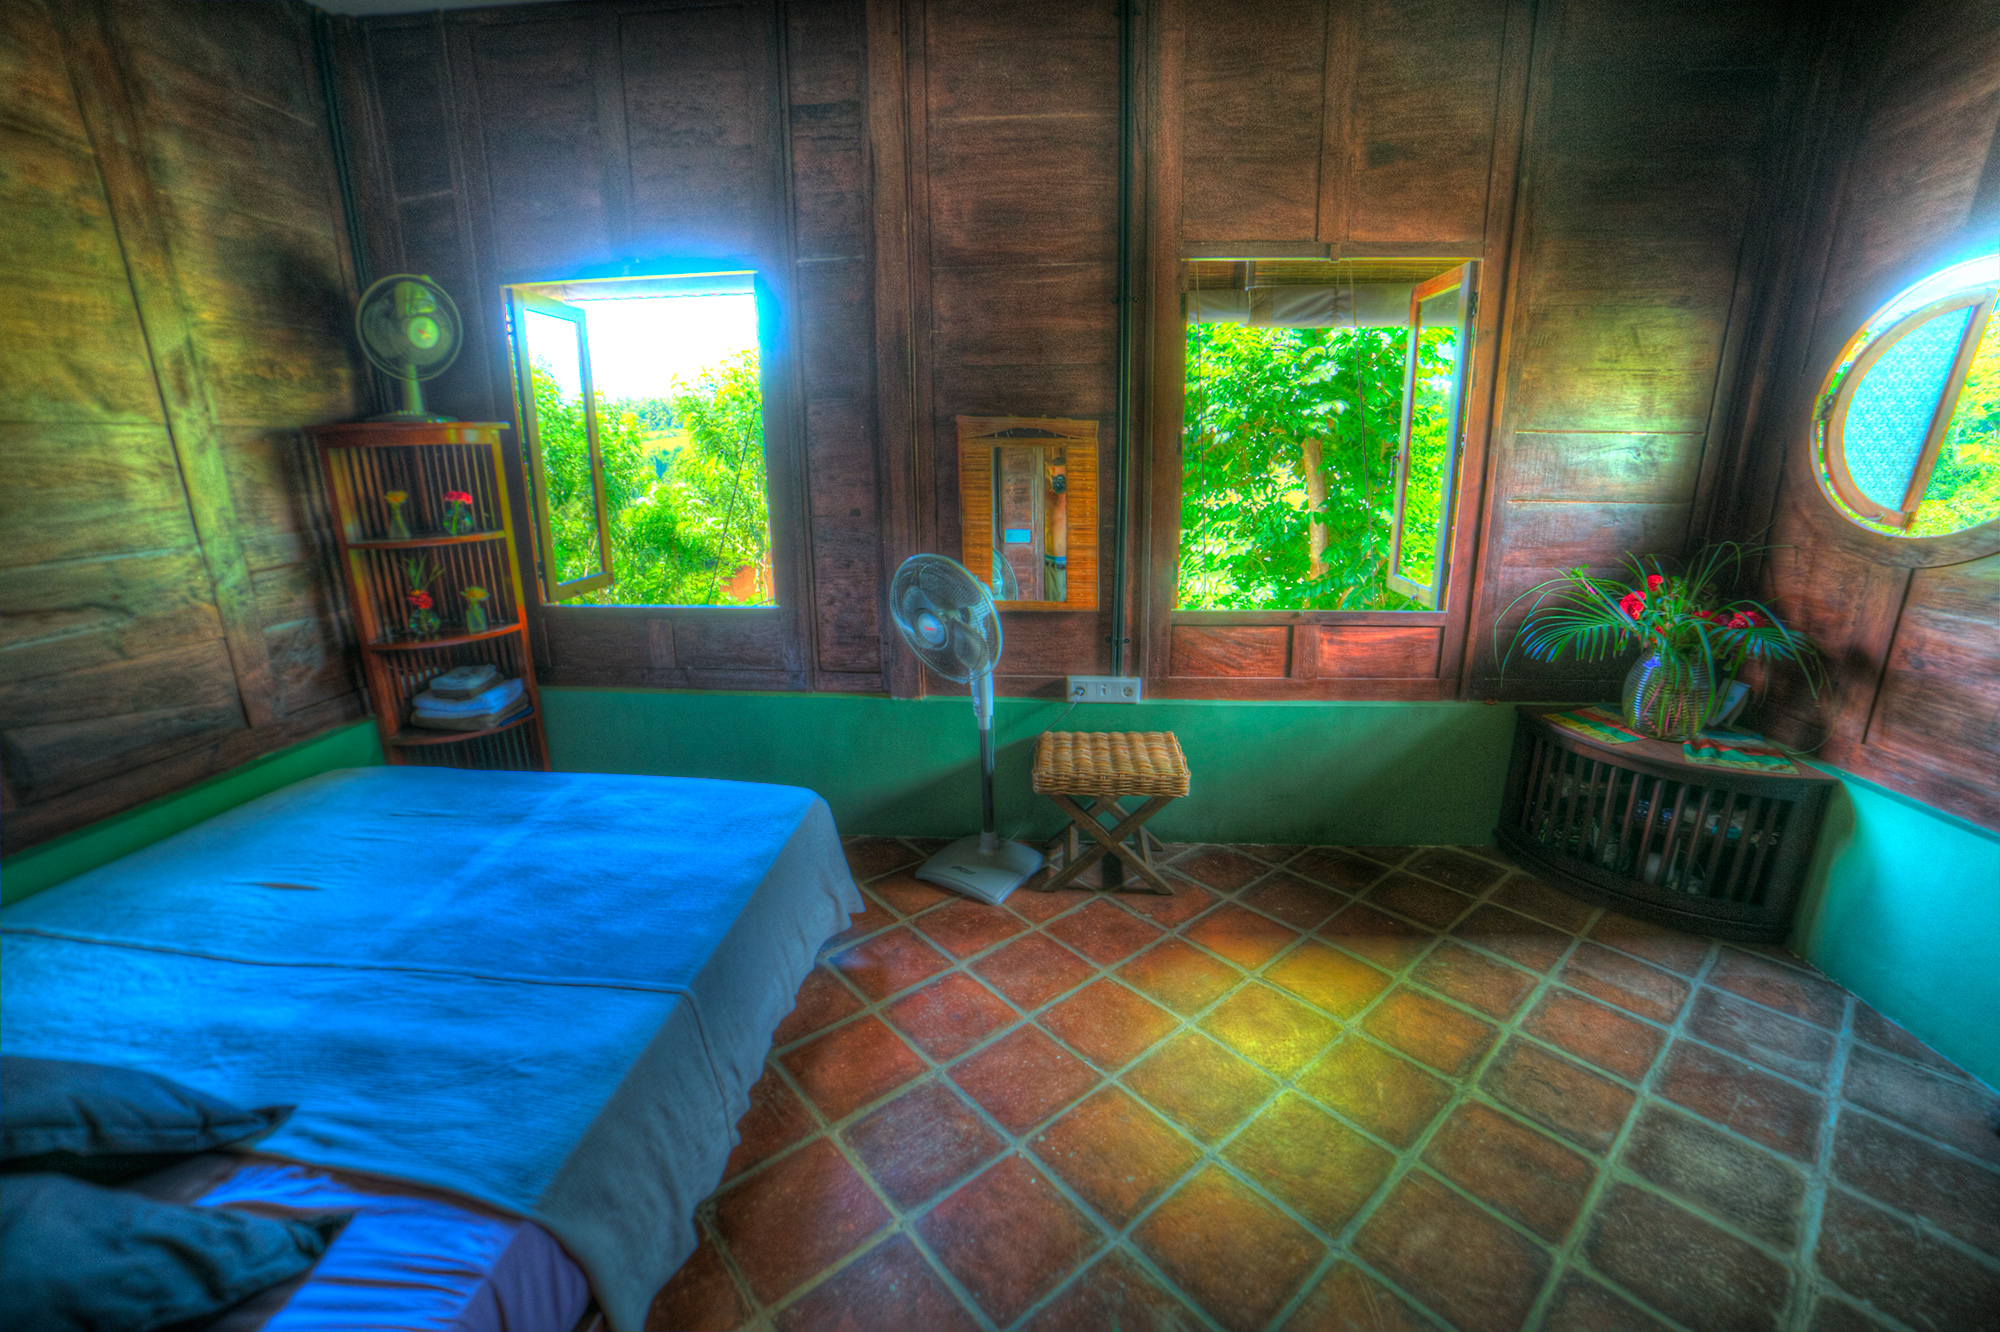 474A9276_7_8_tonemapped